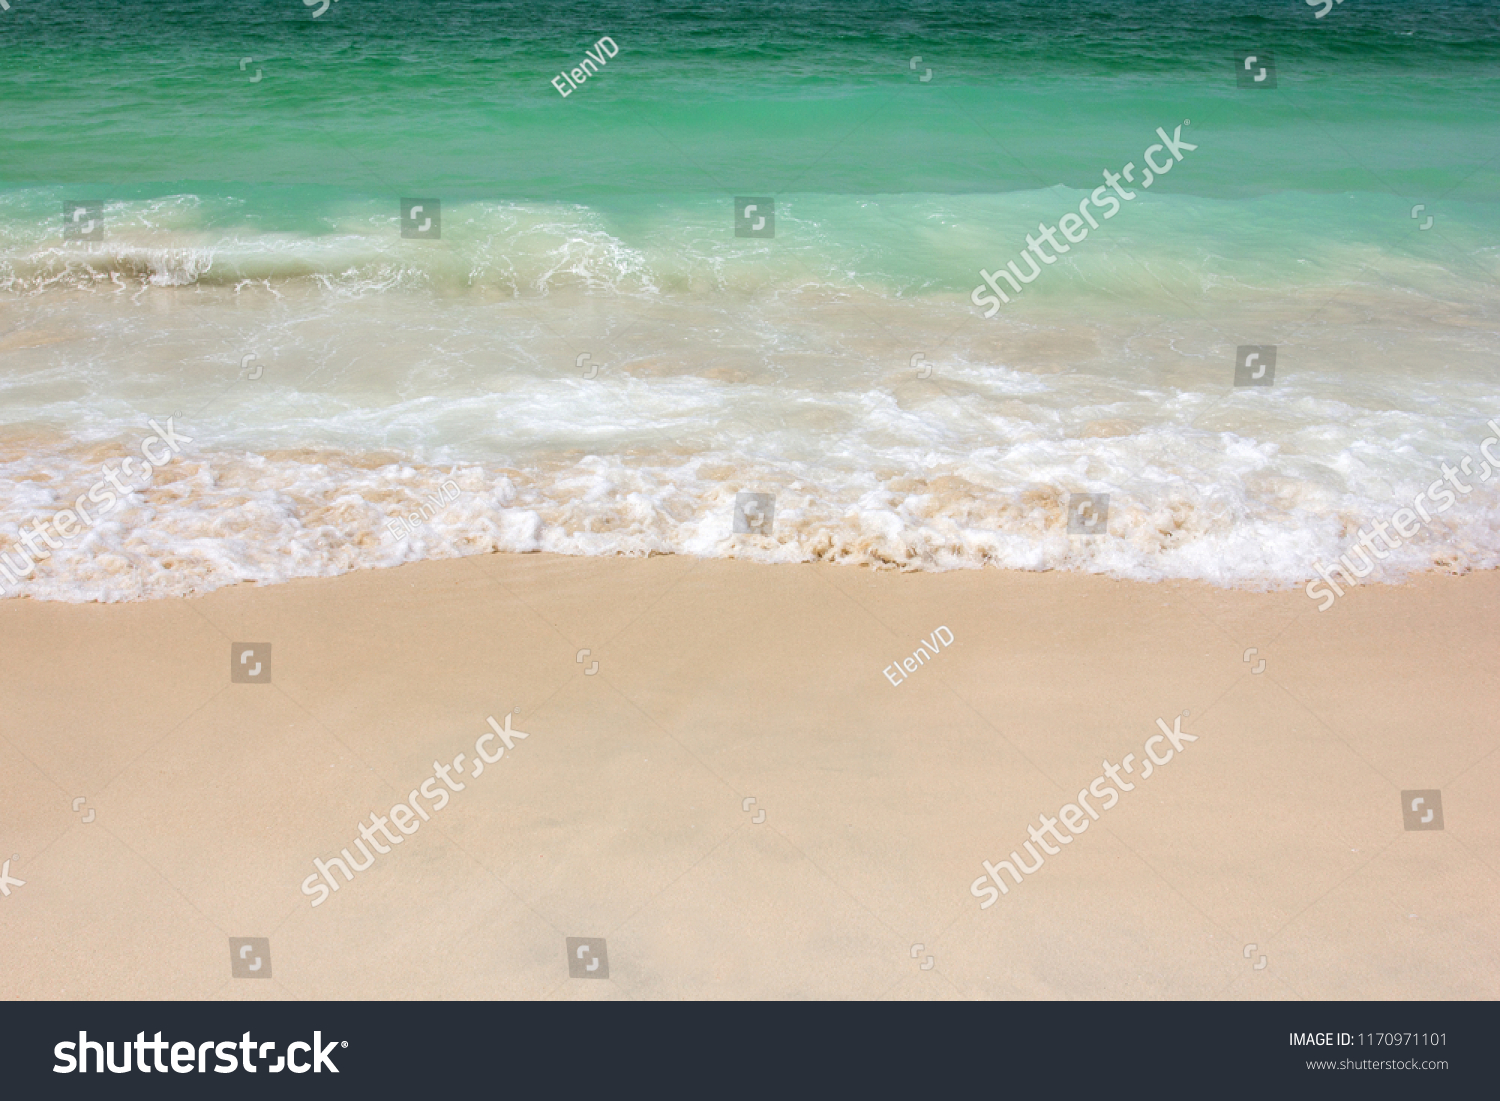 Sea surf of turquoise water on a sandy beach #1170971101